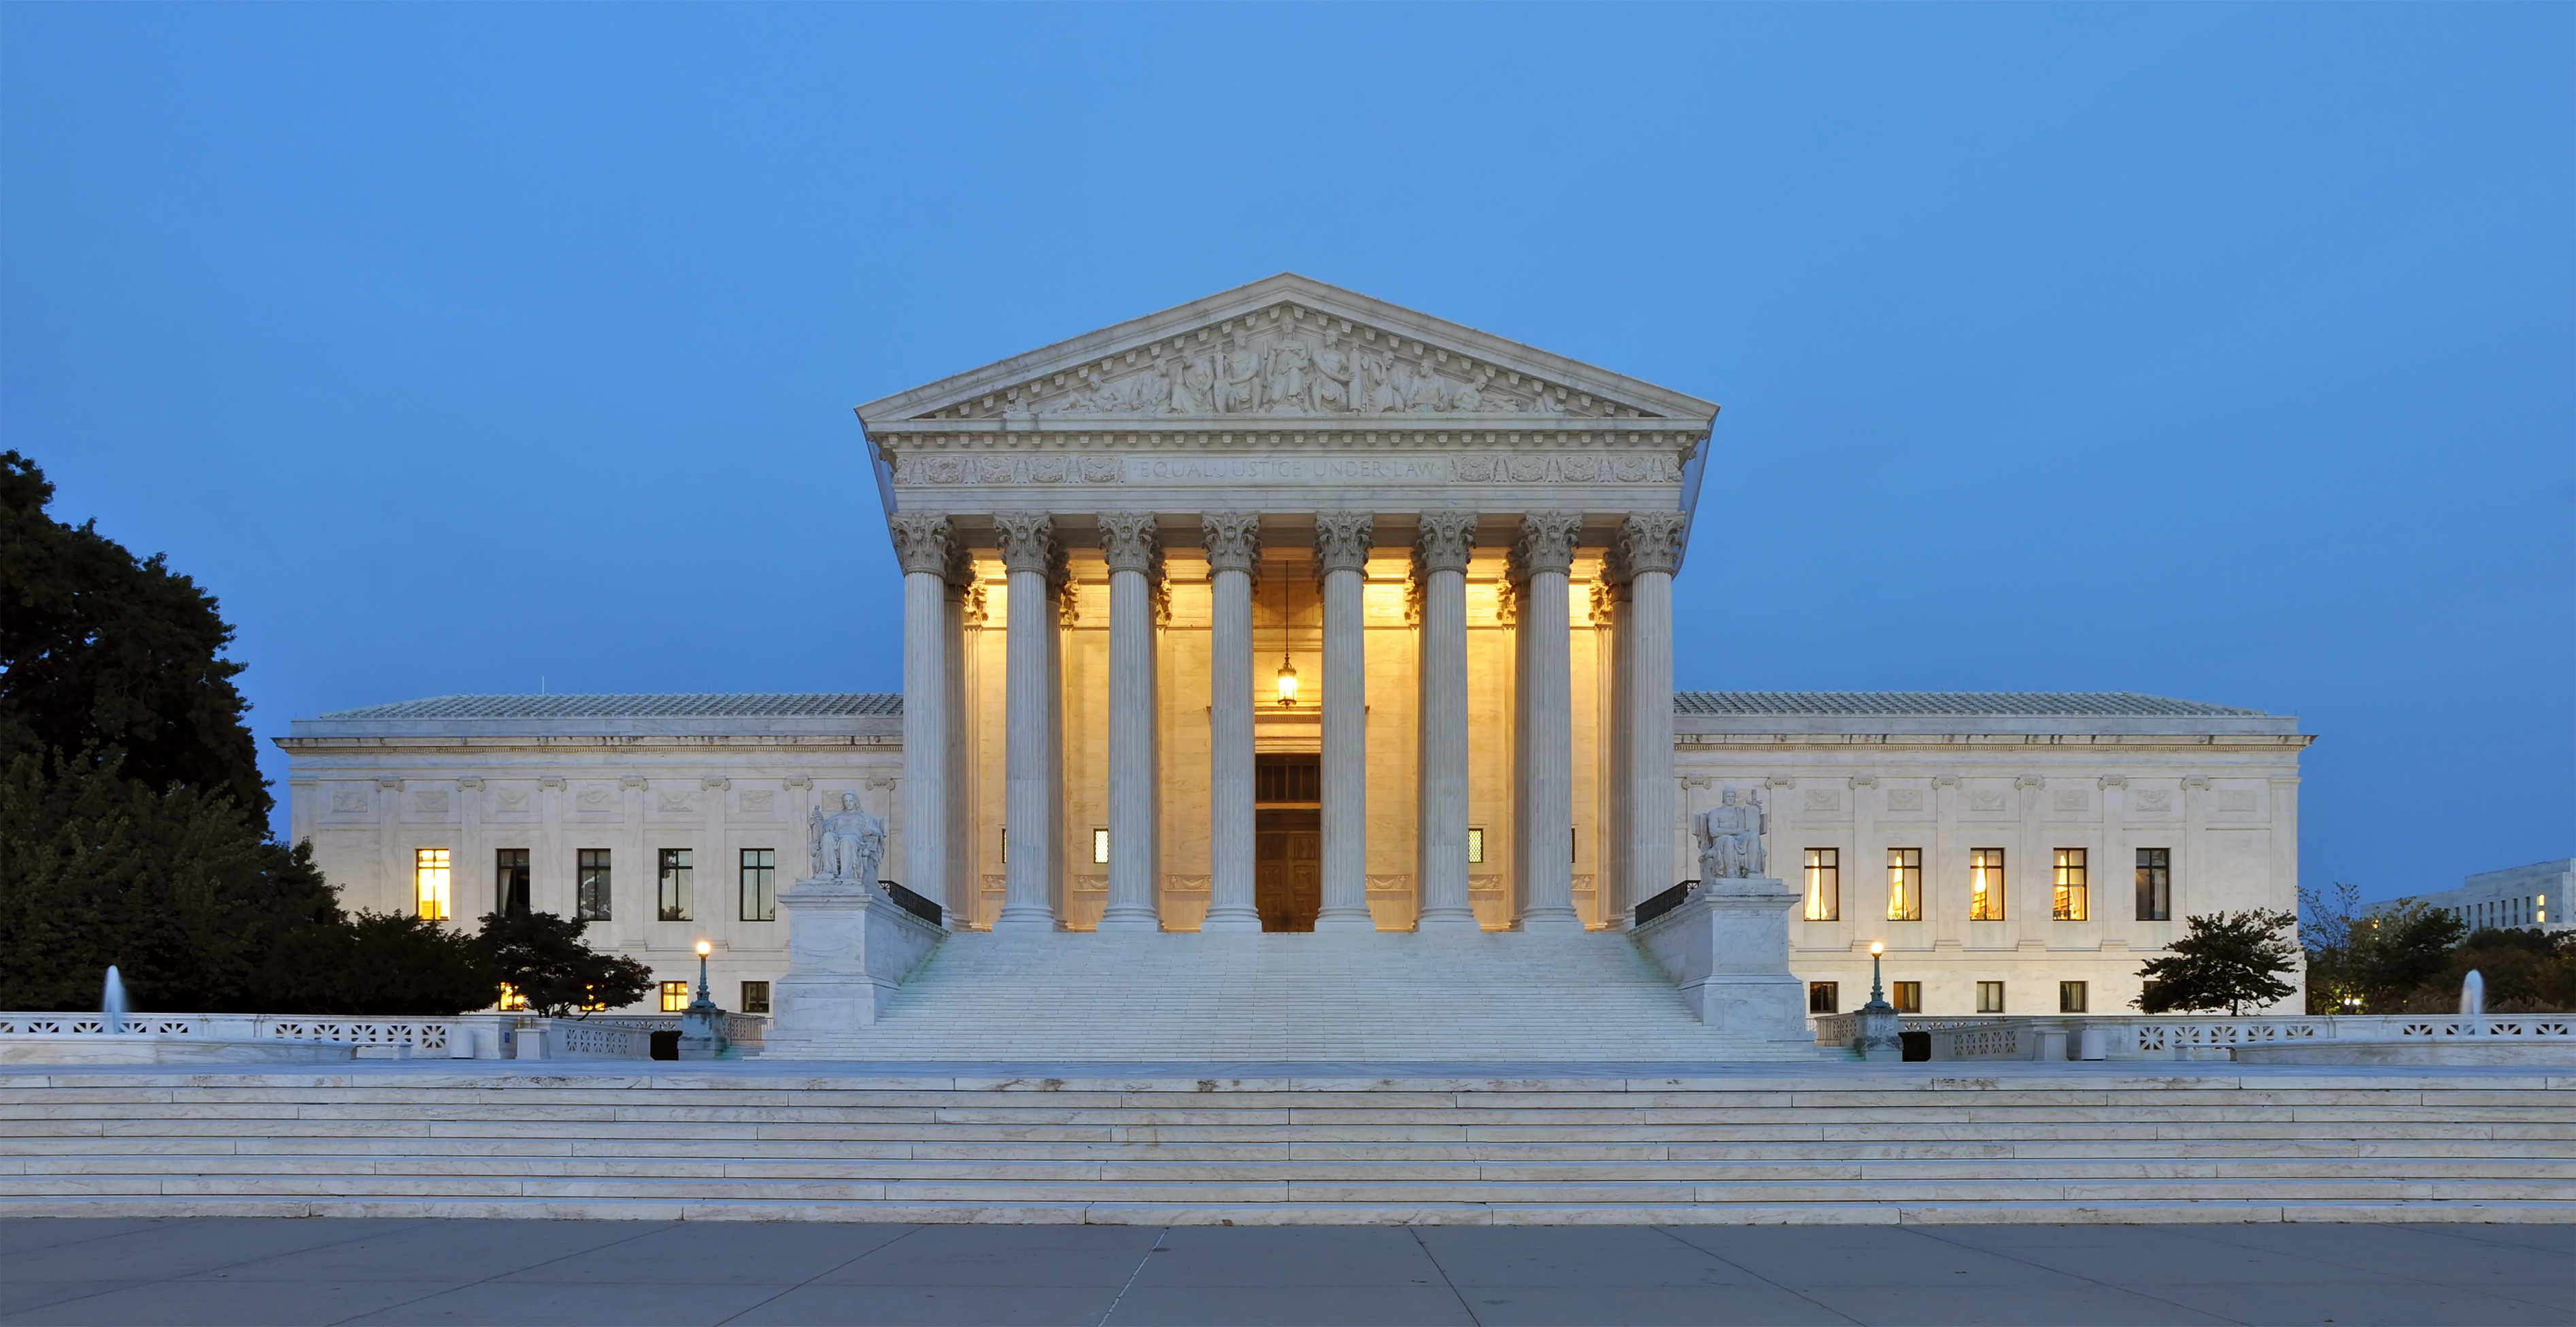 A panorama of the United States Supreme Court building.